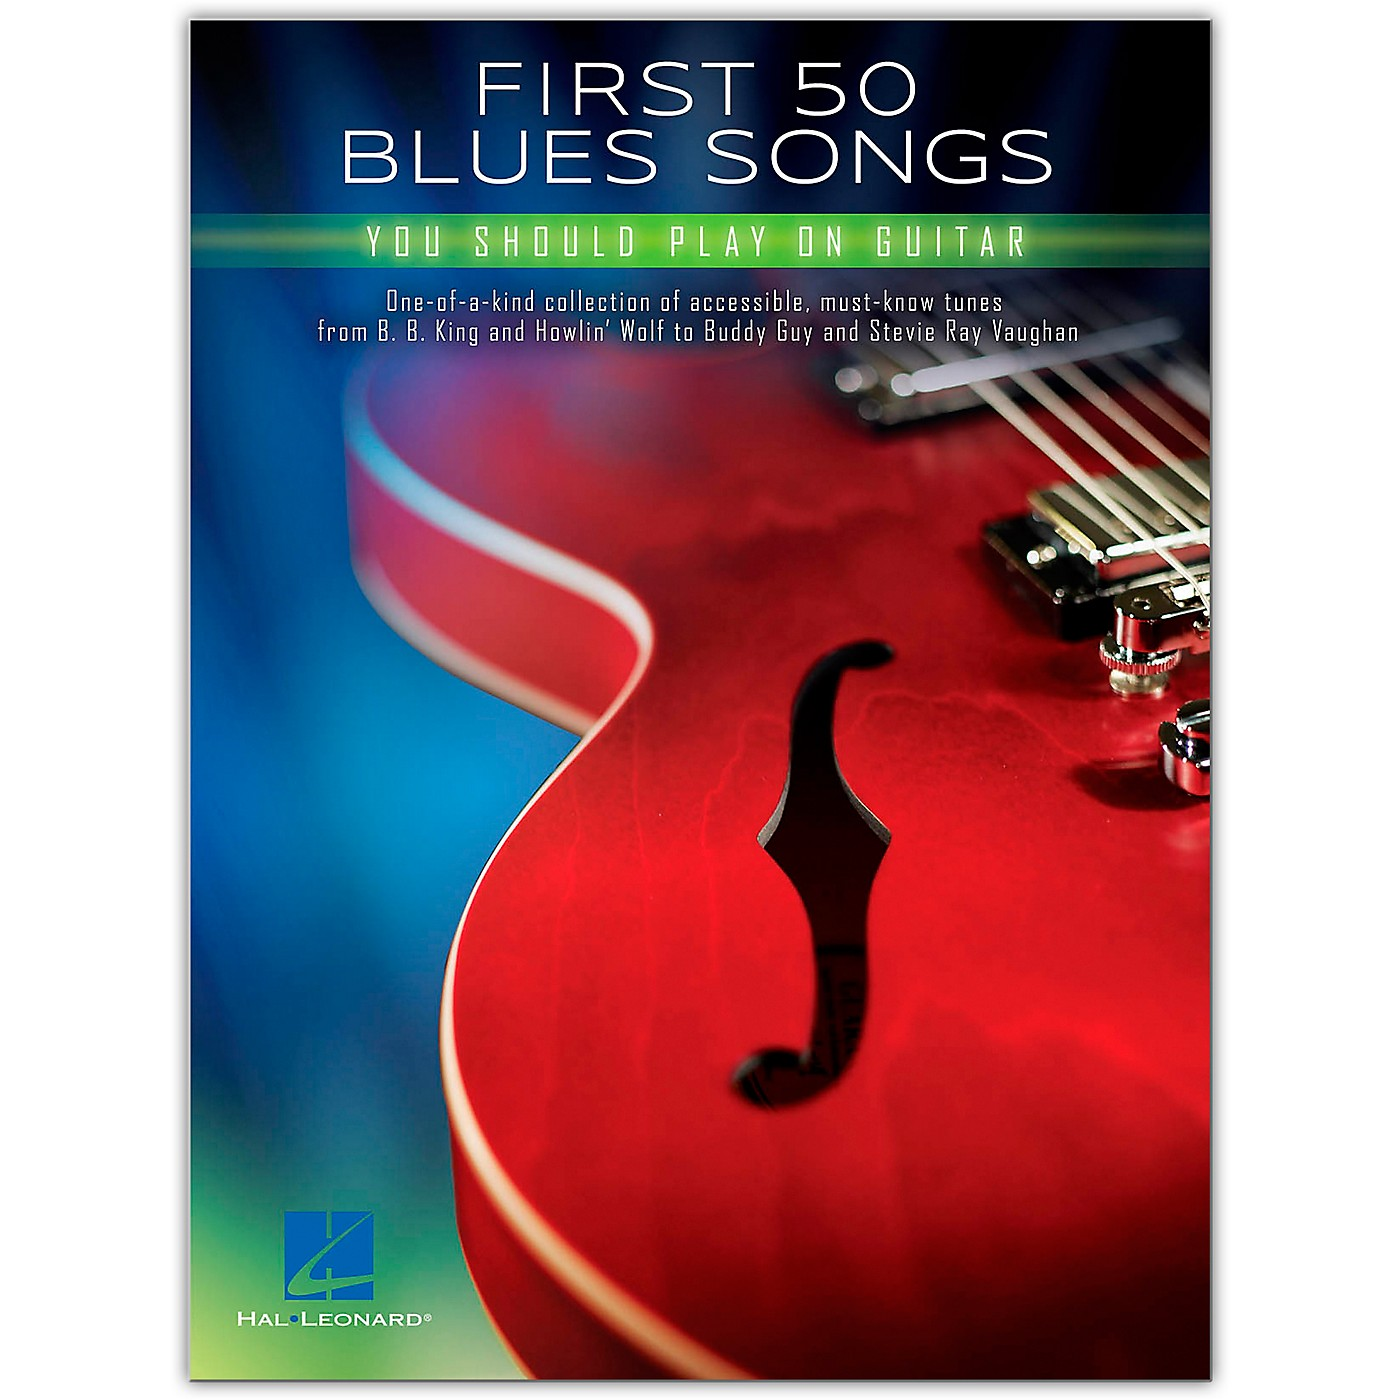 Hal Leonard First 50 Blues Songs You Should Play on Guitar thumbnail